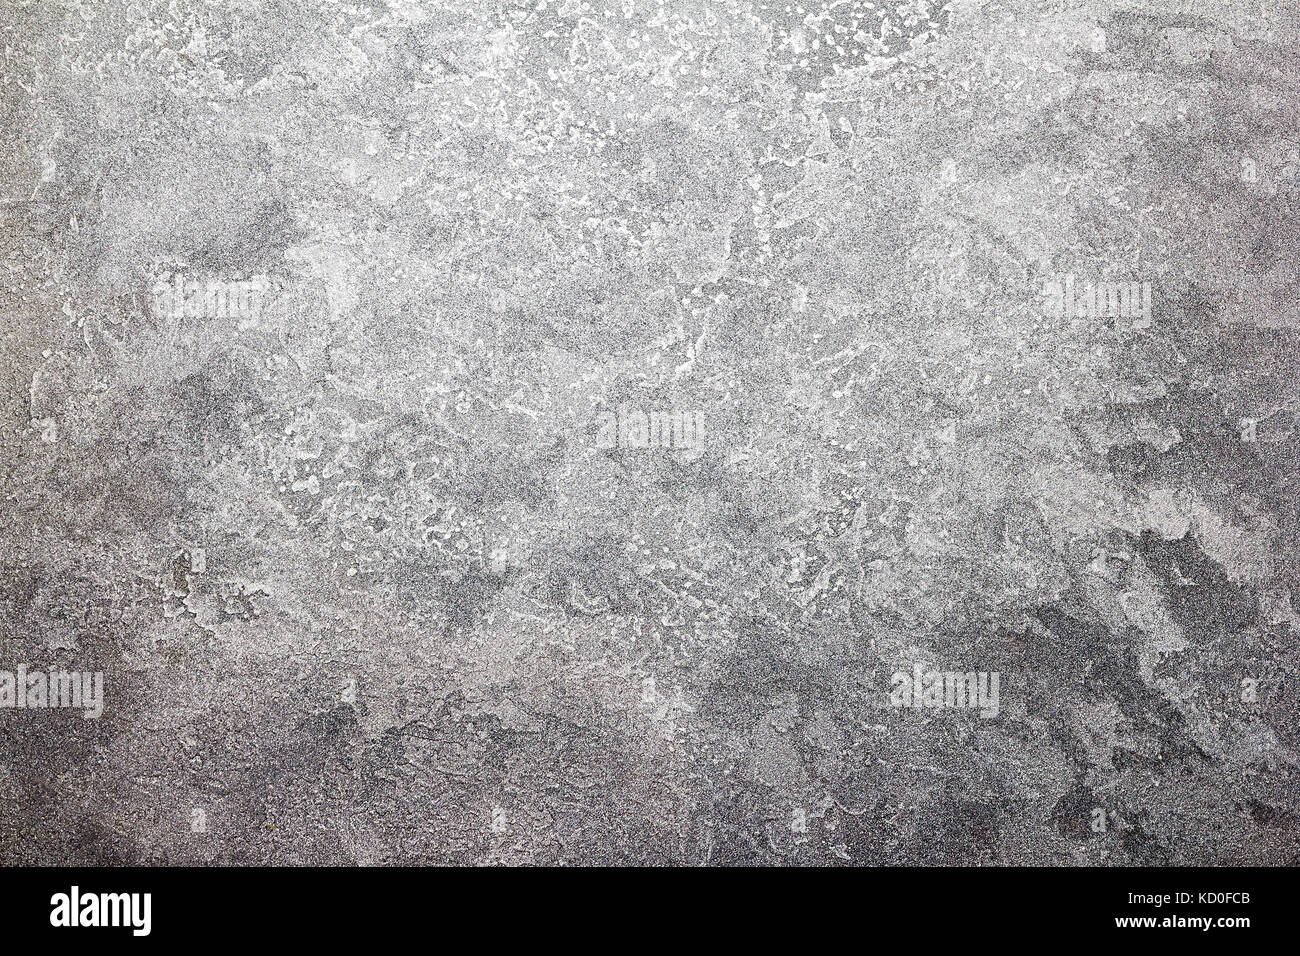 Polished plaster wall texture background Decorative and plastering in loft style. - Stock Image